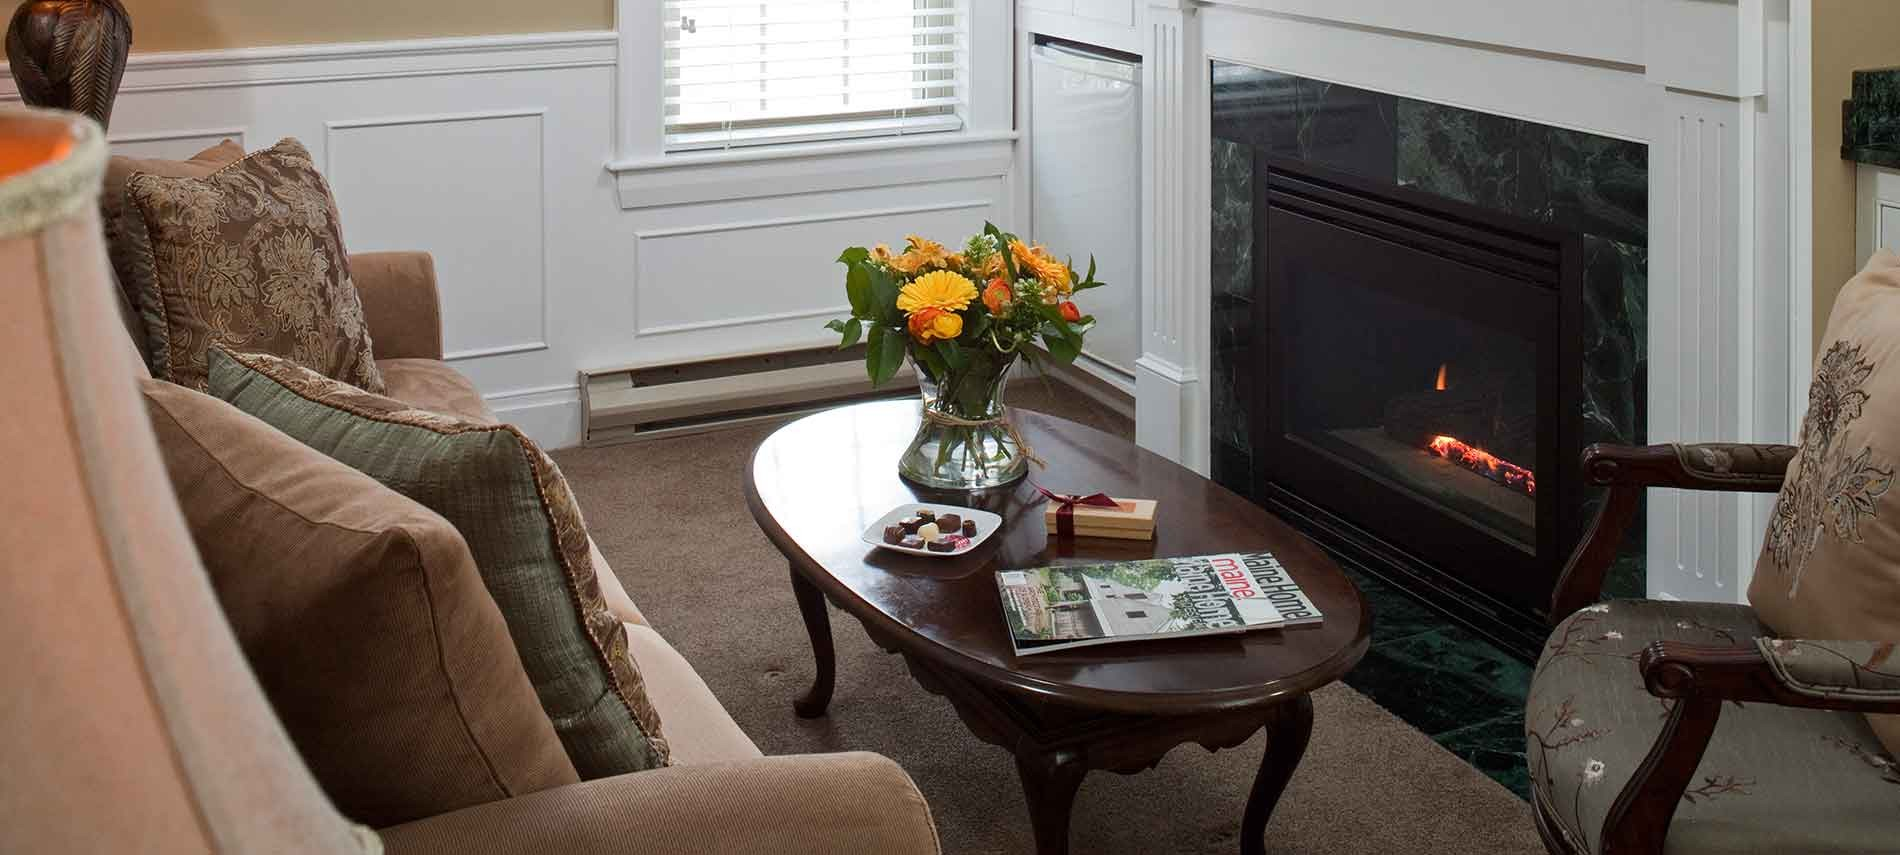 Sebago suite living area with coffee table and bouquet of flowers fireside